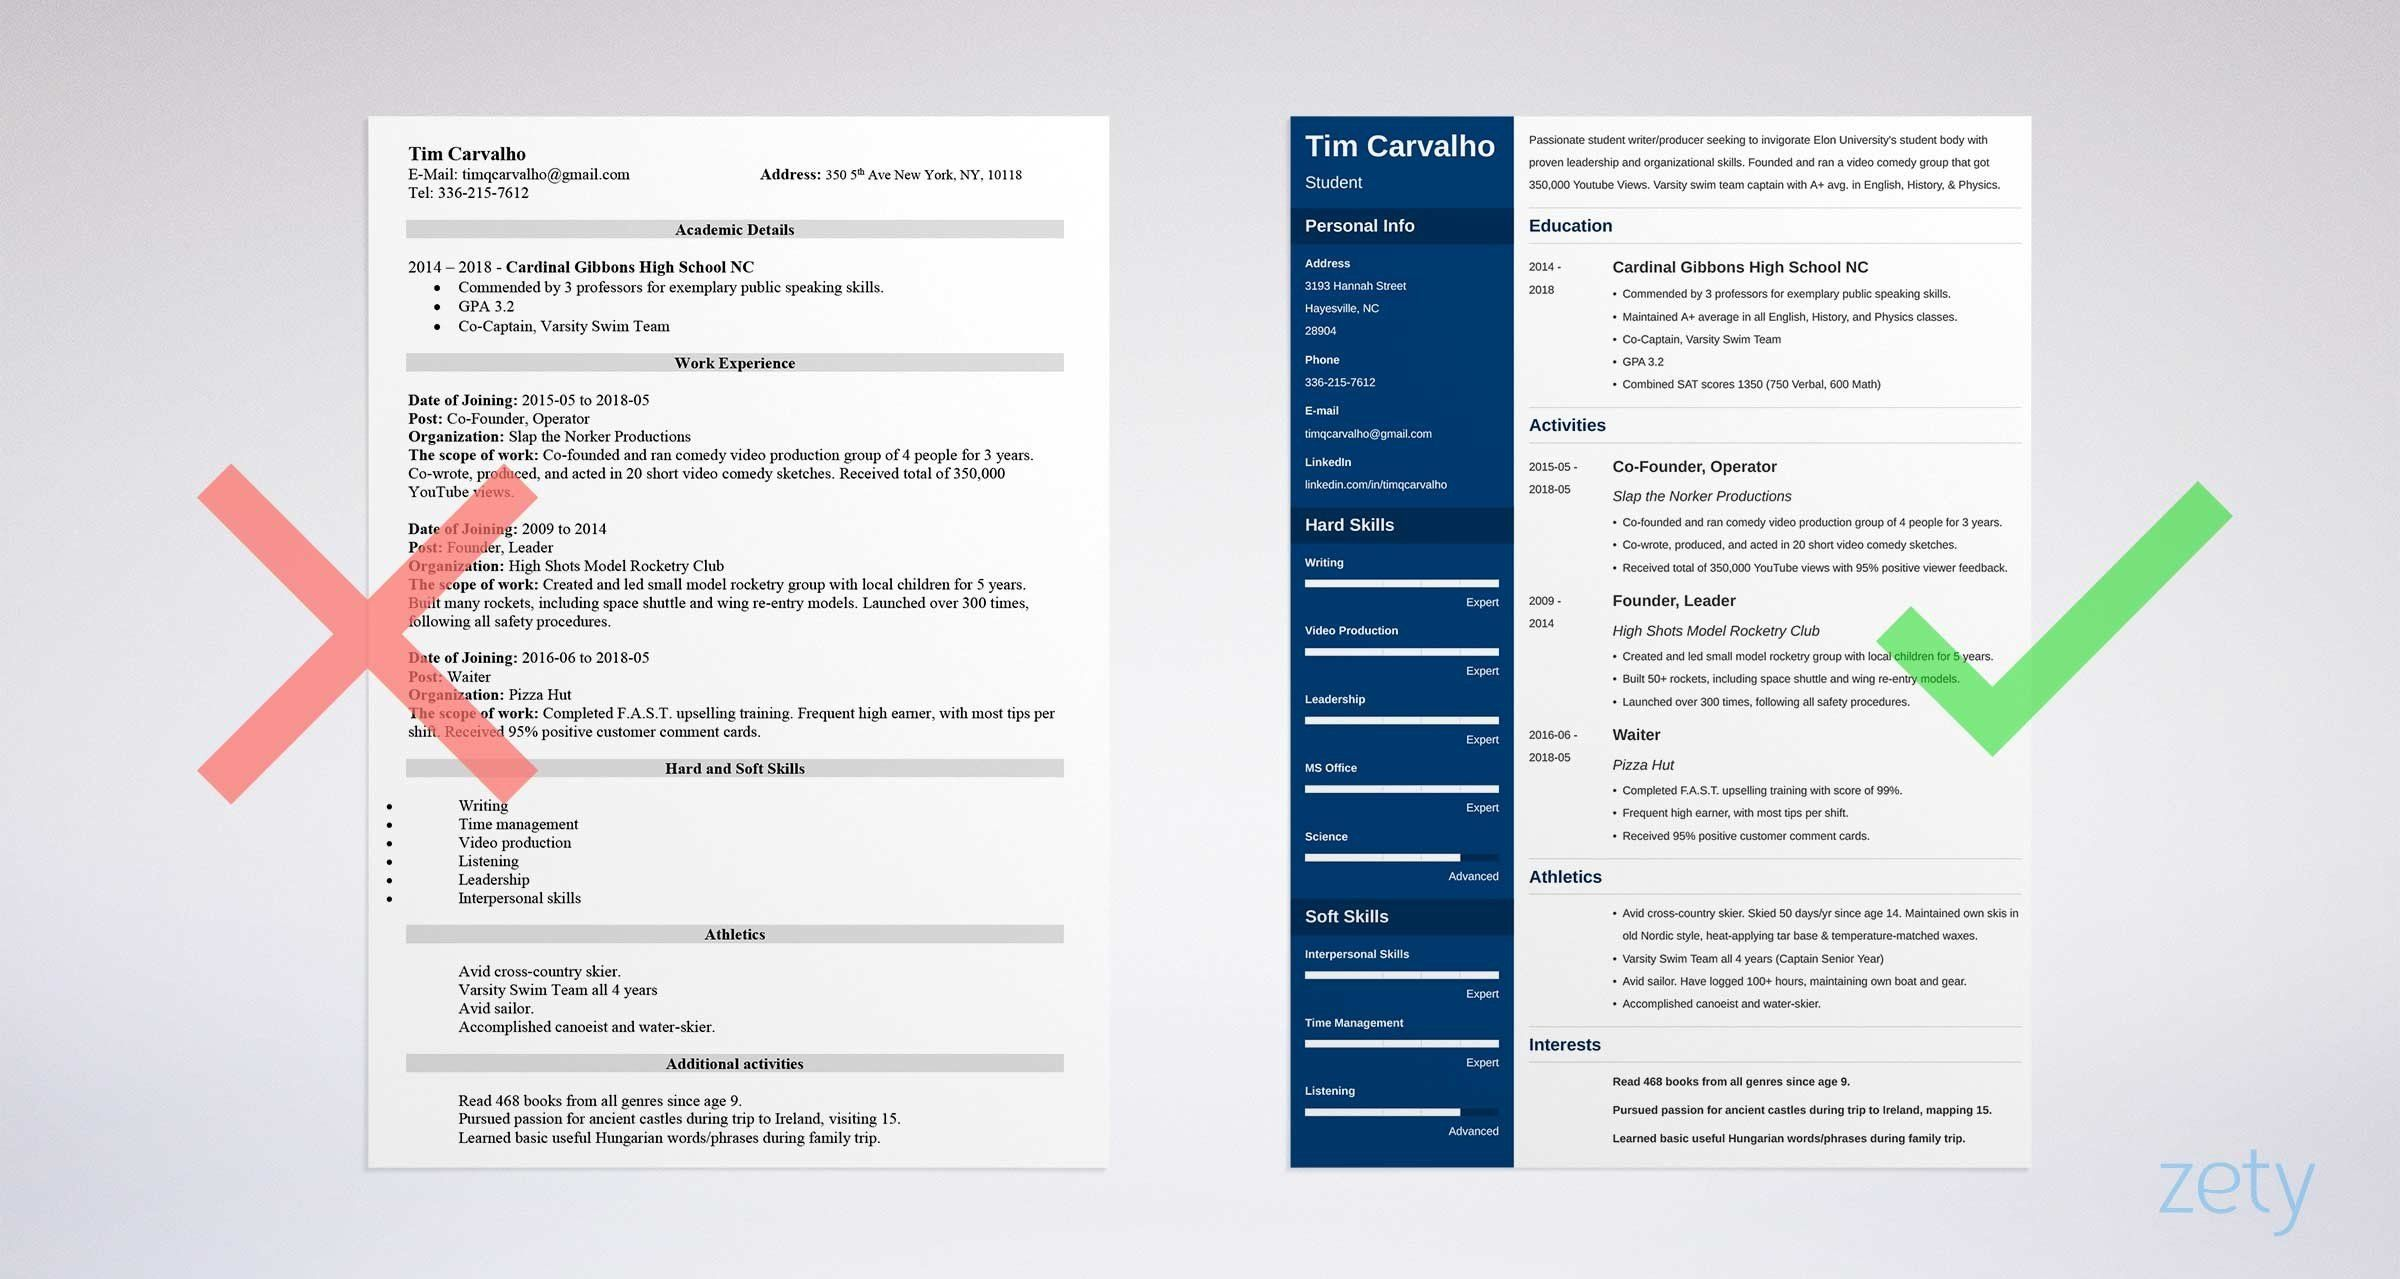 College resume template for high school students 2020 in